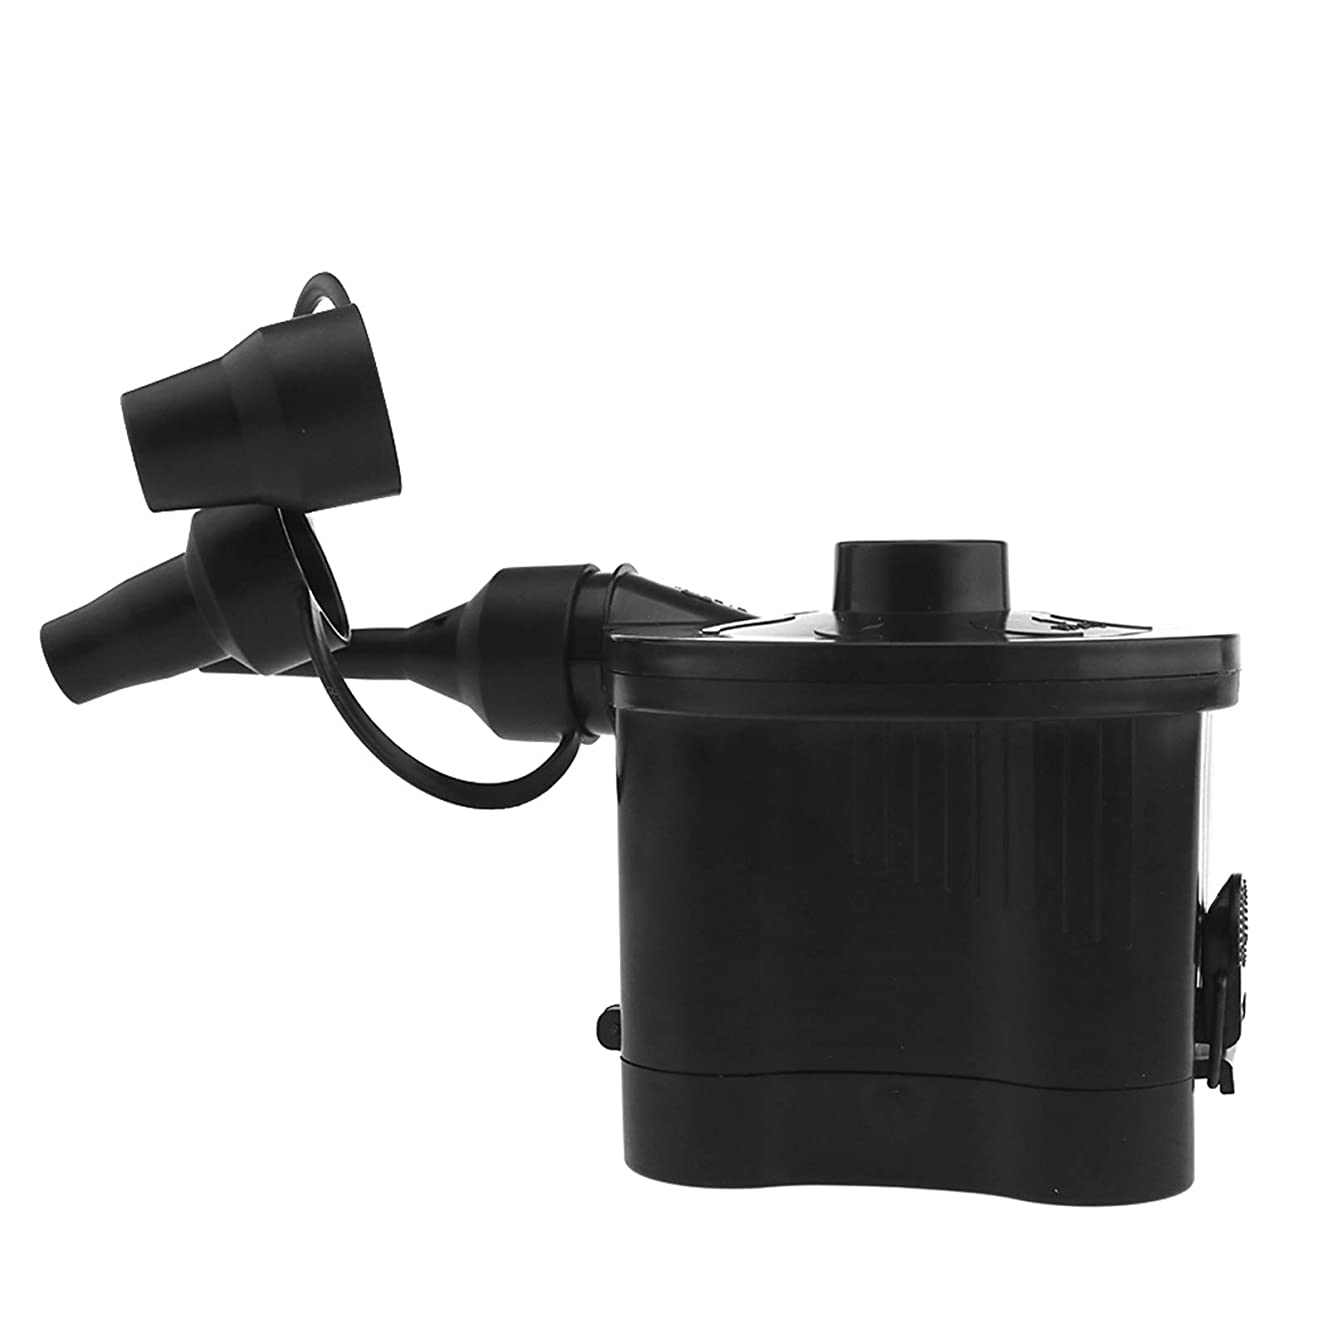 Creative Idear Black Air Pump Inflator Electric Portable Battery Powered with 3 Nozzles ABS for Toys Air Bed